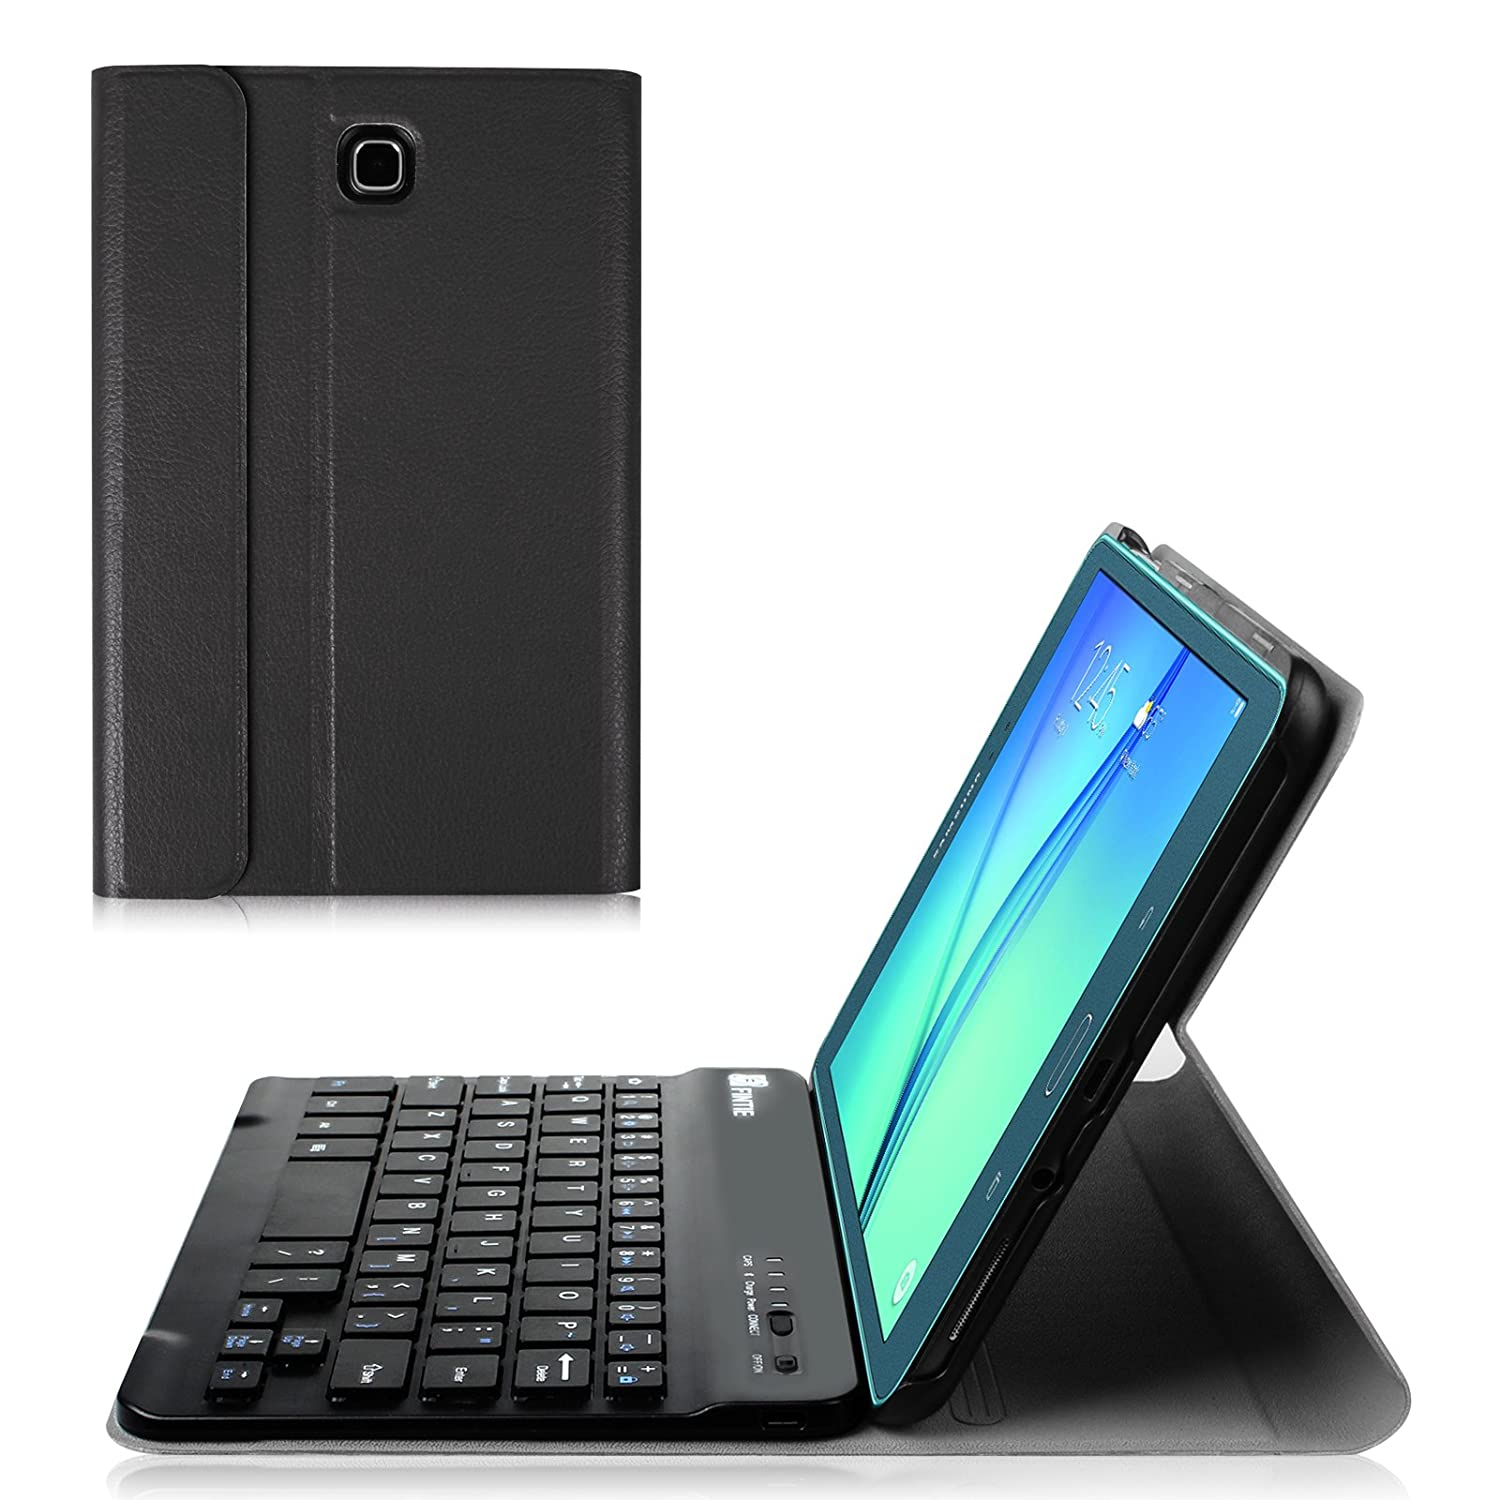 Fintie Keyboard Case For Samsung Galaxy Tab A 80 2015 Slim P355 Shell Light Weight